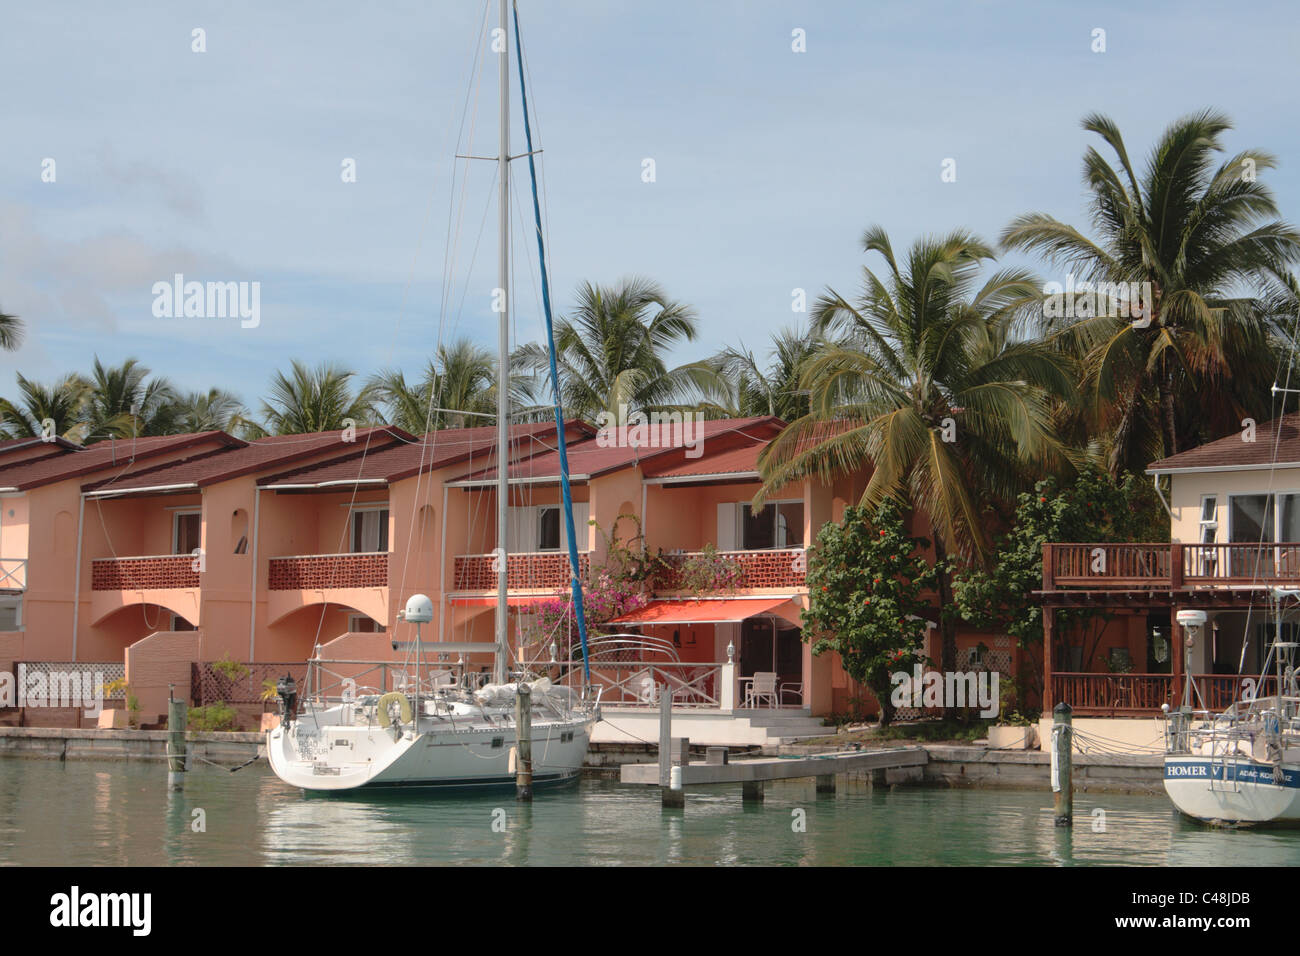 La location à quai en face du côté de l'eau, appartements jolly bay, Antigua, Antilles Photo Stock